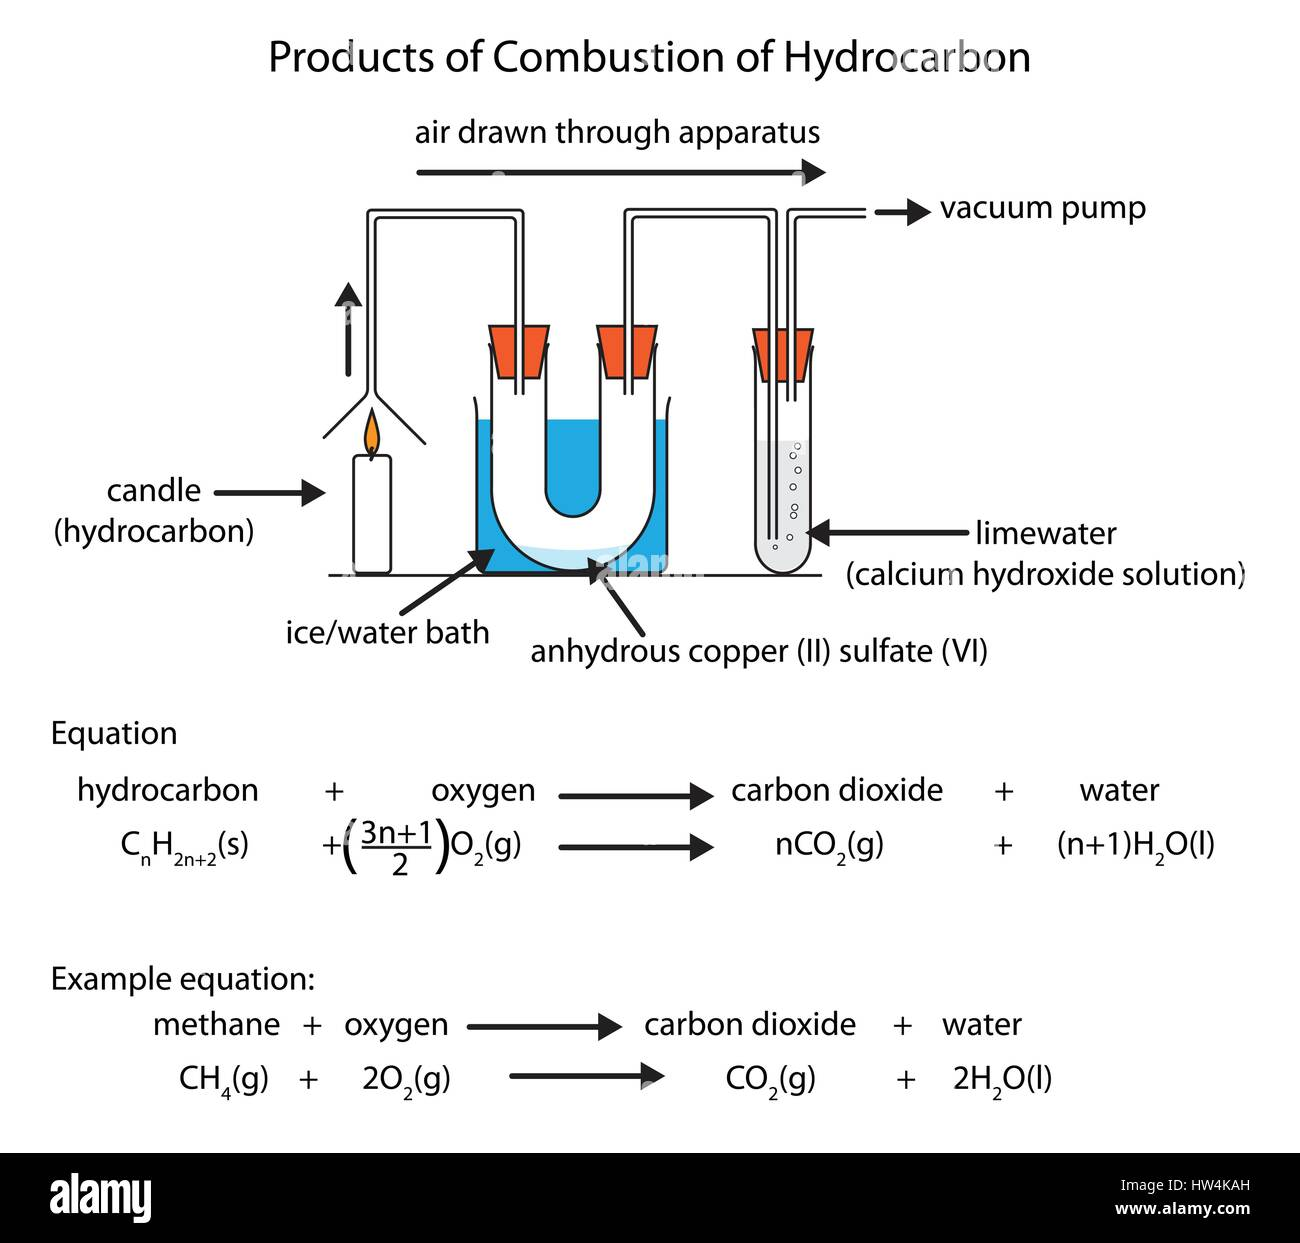 Labeled Diagram Showing The Products Of Hydrocarbon